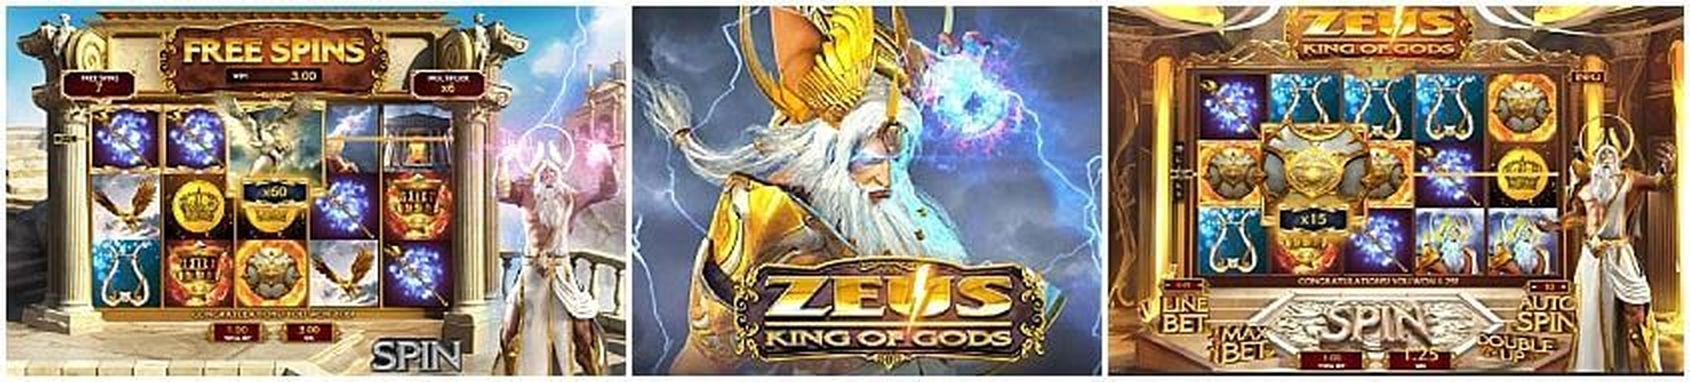 The Zeus King of Gods Online Slot Demo Game by Gameplay Interactive